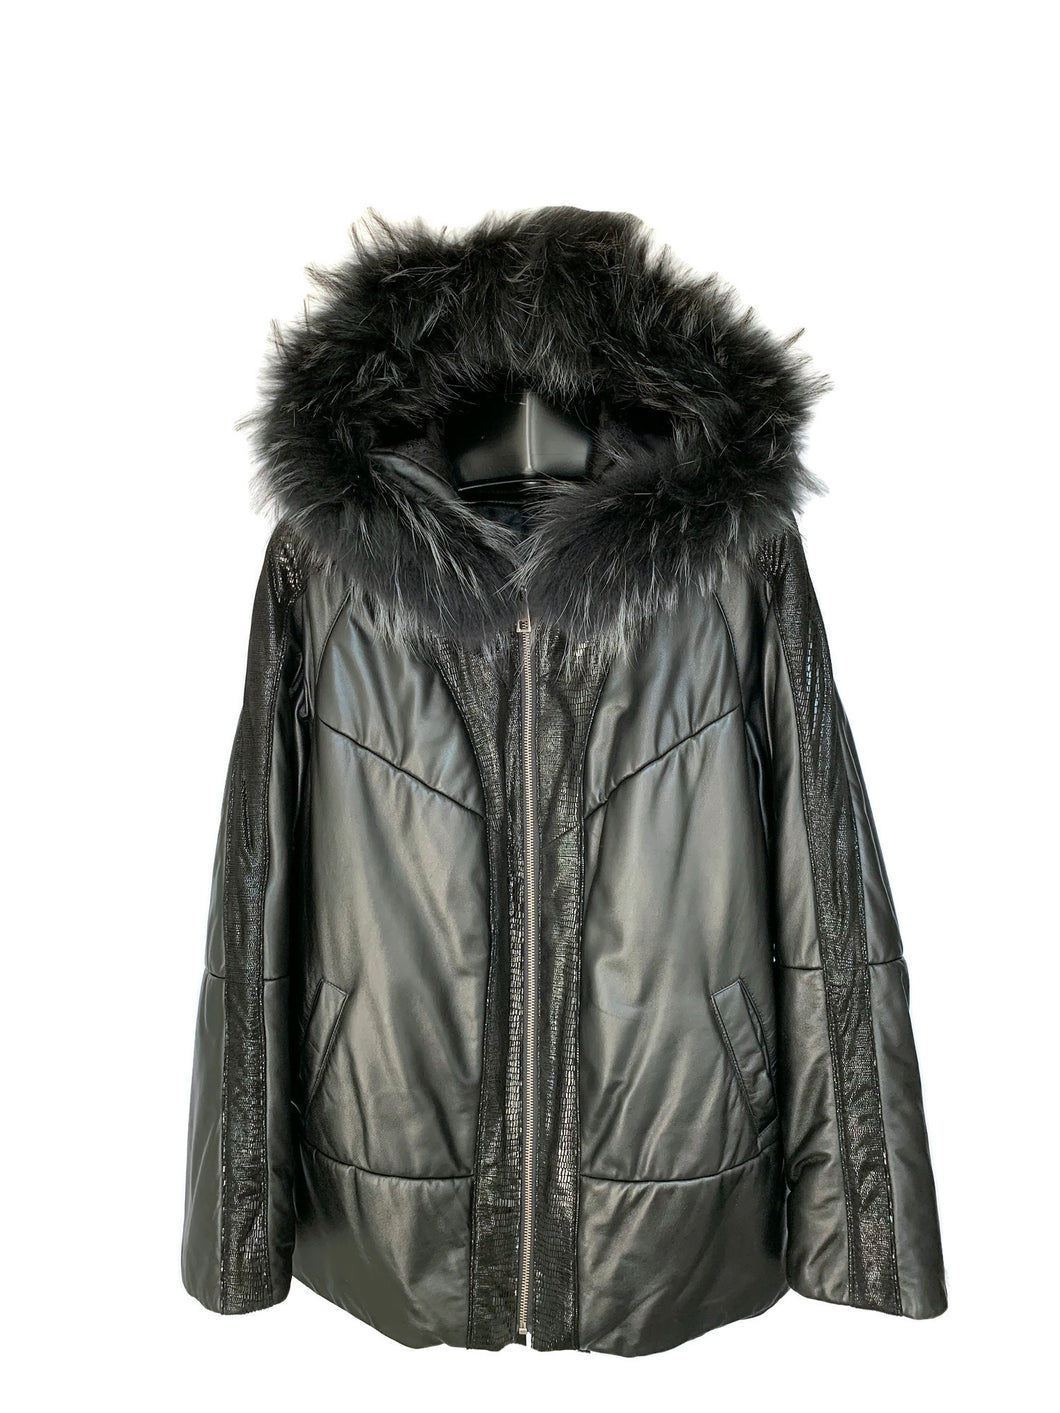 Black Lambskin Jacket W/ Raccoon Trim